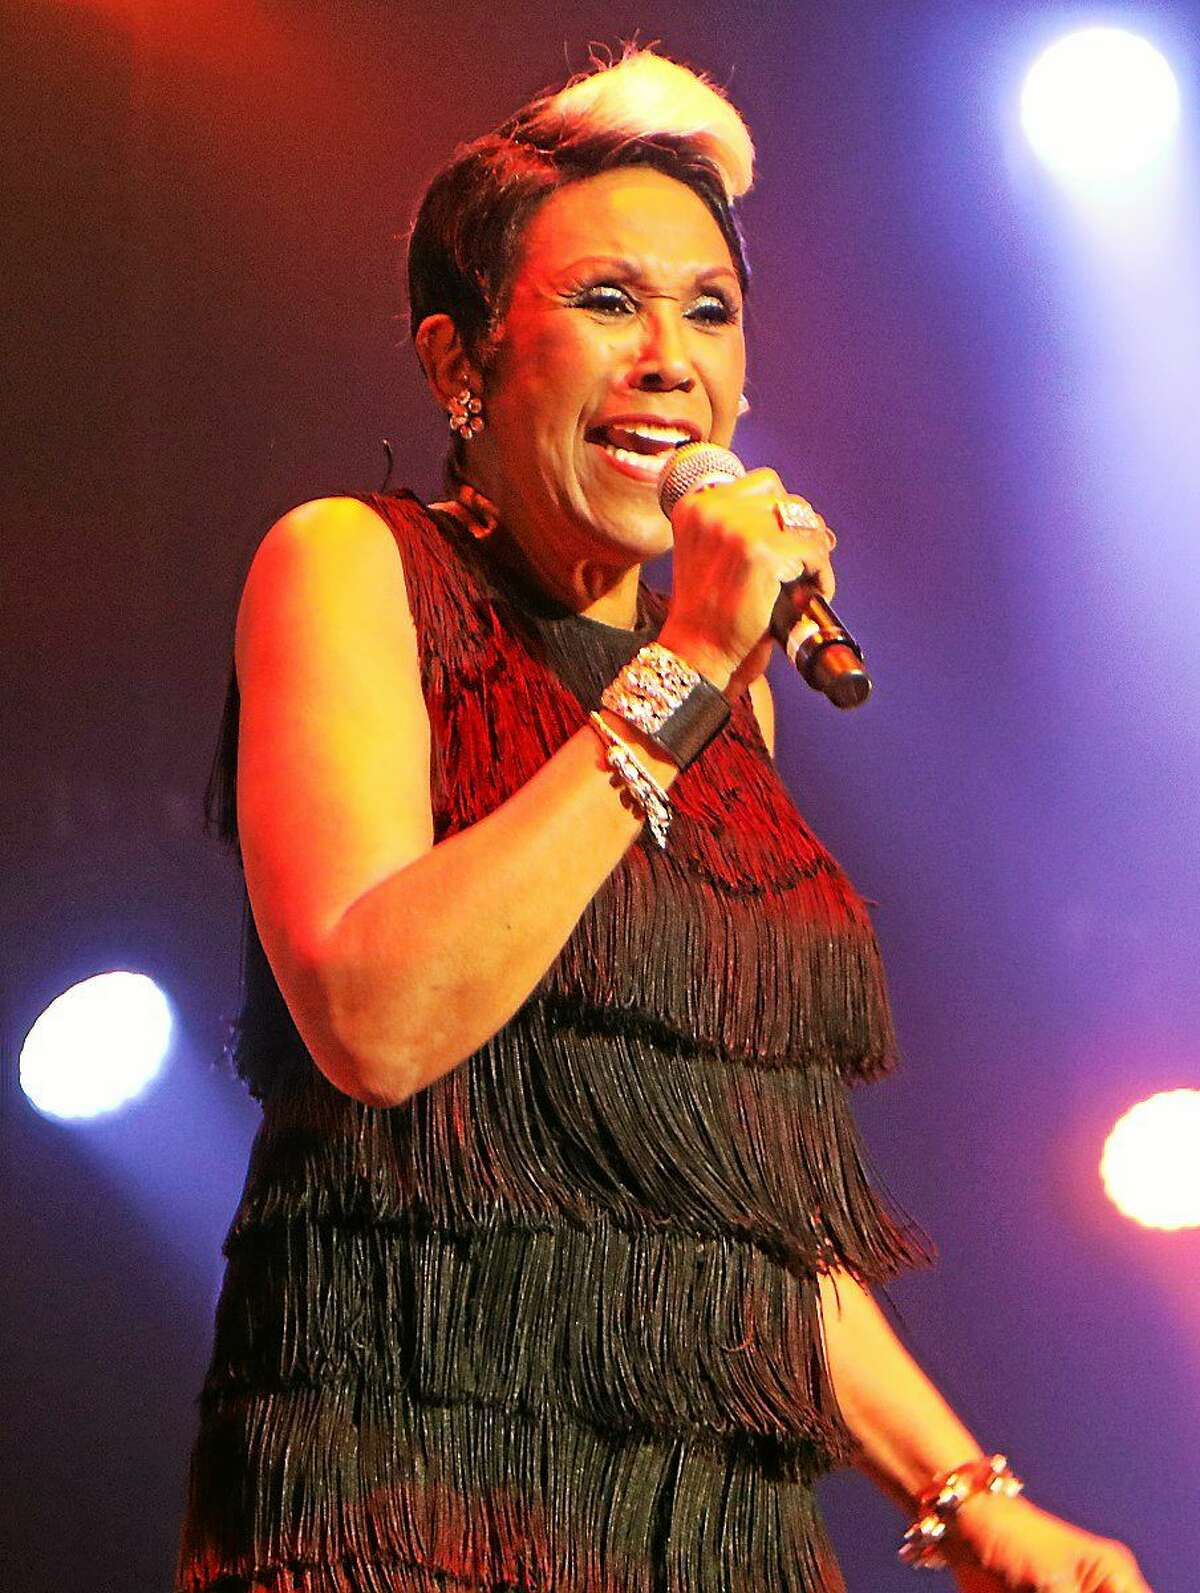 Photo by John Atashian Singer Ruth Pointer, best known for being the eldest member of the legendary Pointer Sisters, performs at the Mohegan Sun Arena during the groups headline appearance on Feb. 6. Their set was part of the ì80ís Extravaganzaî concert which also included performances by singers Debbie Gibson, Terri Nunn & Berlin, Tiffany, Shannon, Club Nouveau and Andy Bell of Erasure.